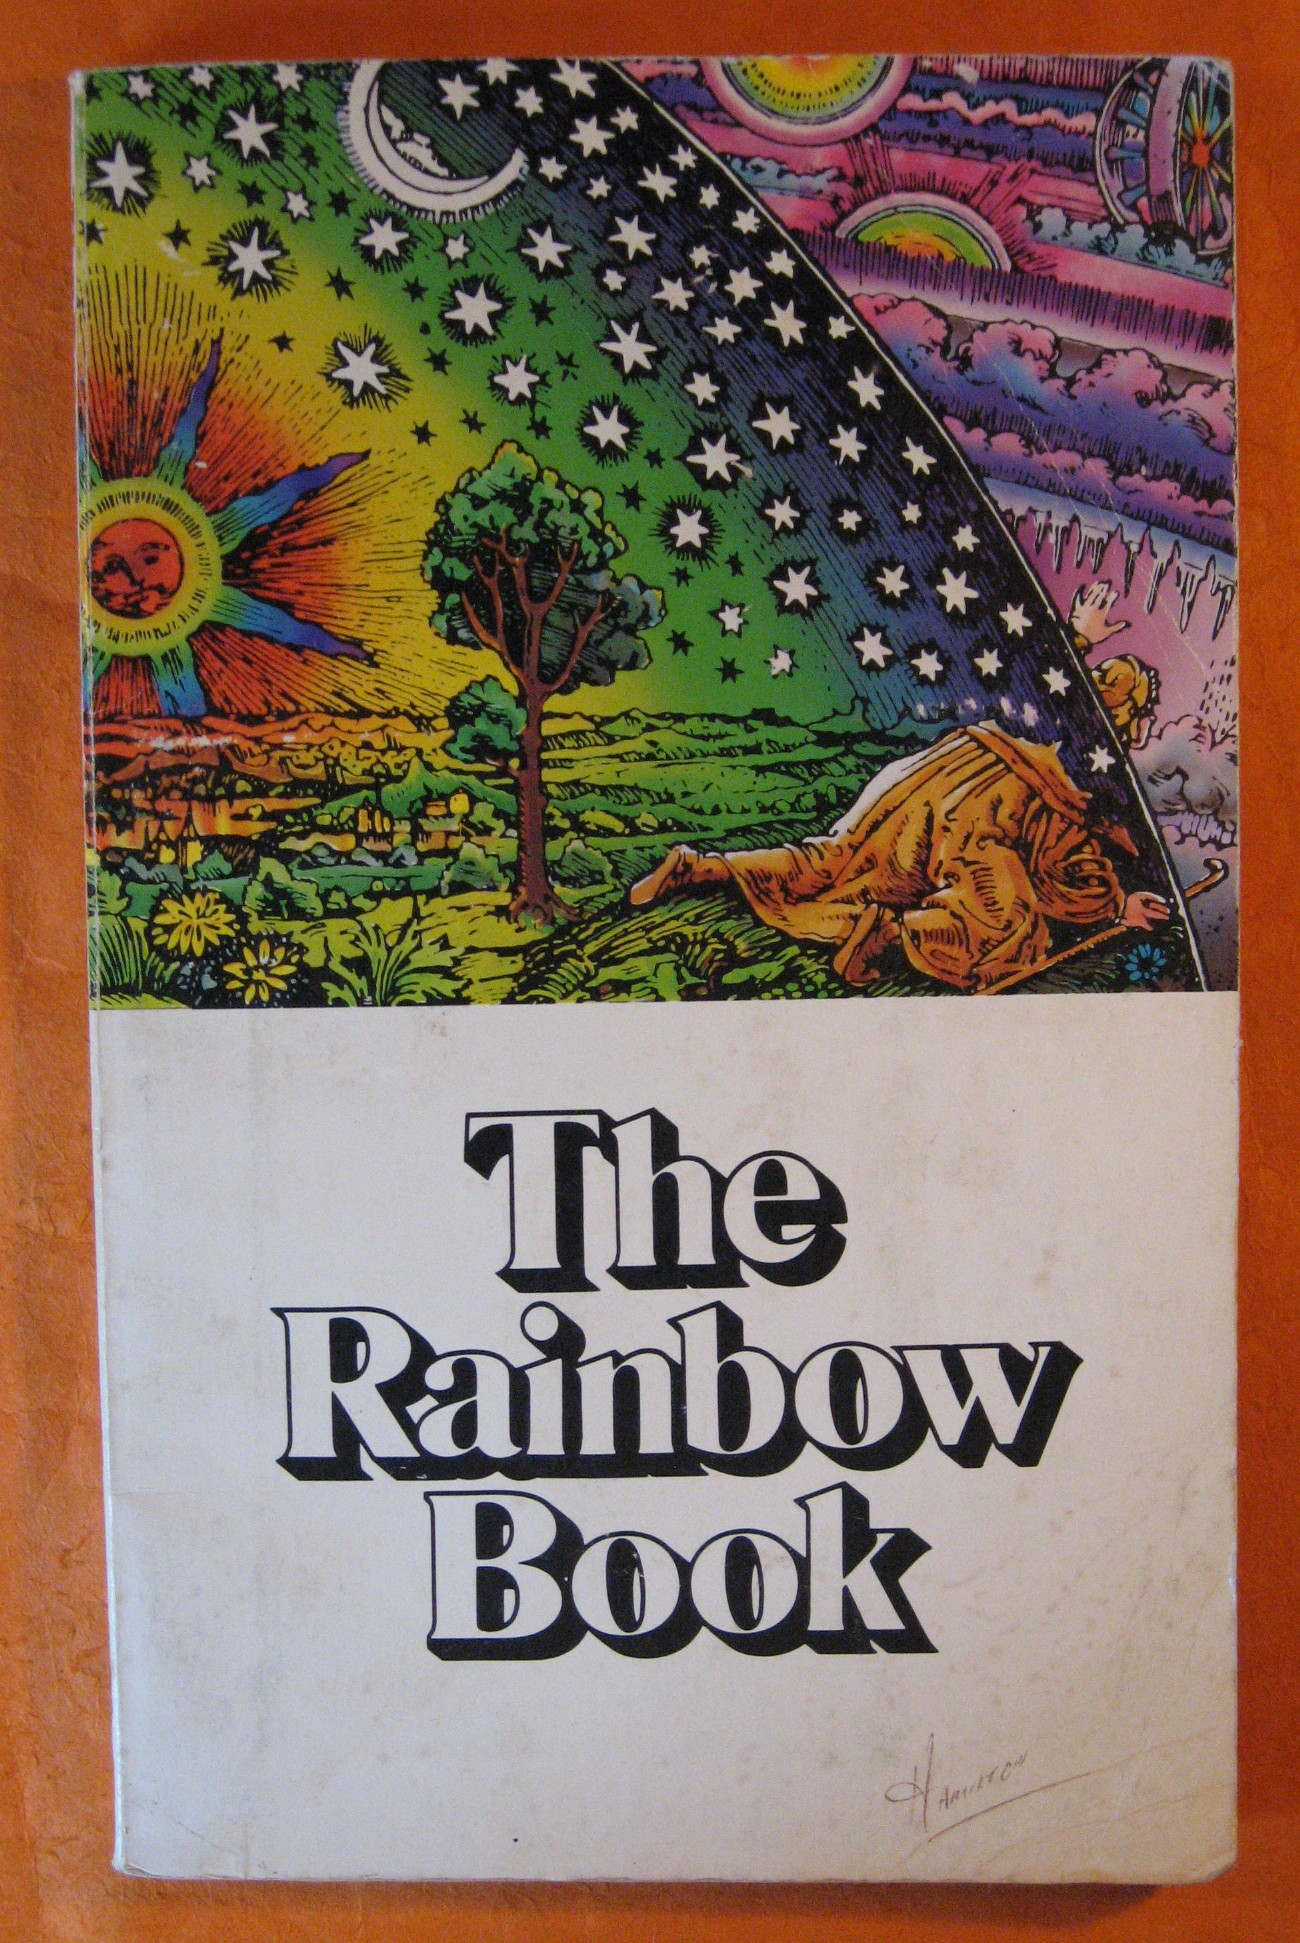 Rainbow Book: Being a Collection of Essays & Illustrations Devoted to Rainbows in Particular & Spectral Sequences in General Focusing on the ... Metaphysically) from Ancient to Modern Times, The